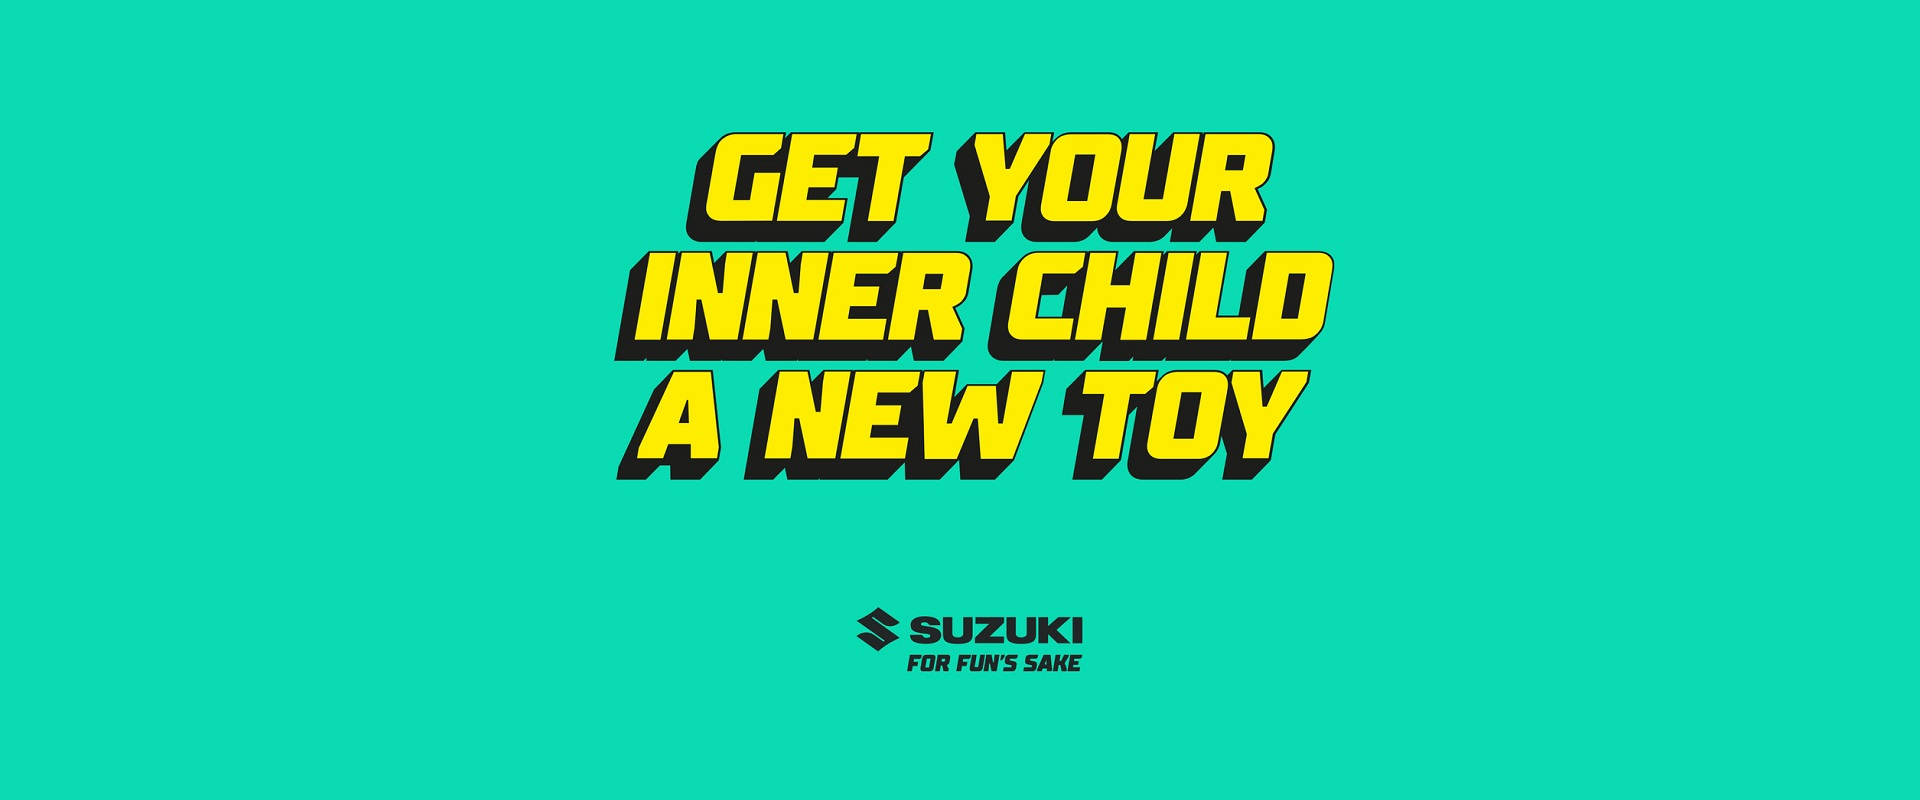 Get your inner child...